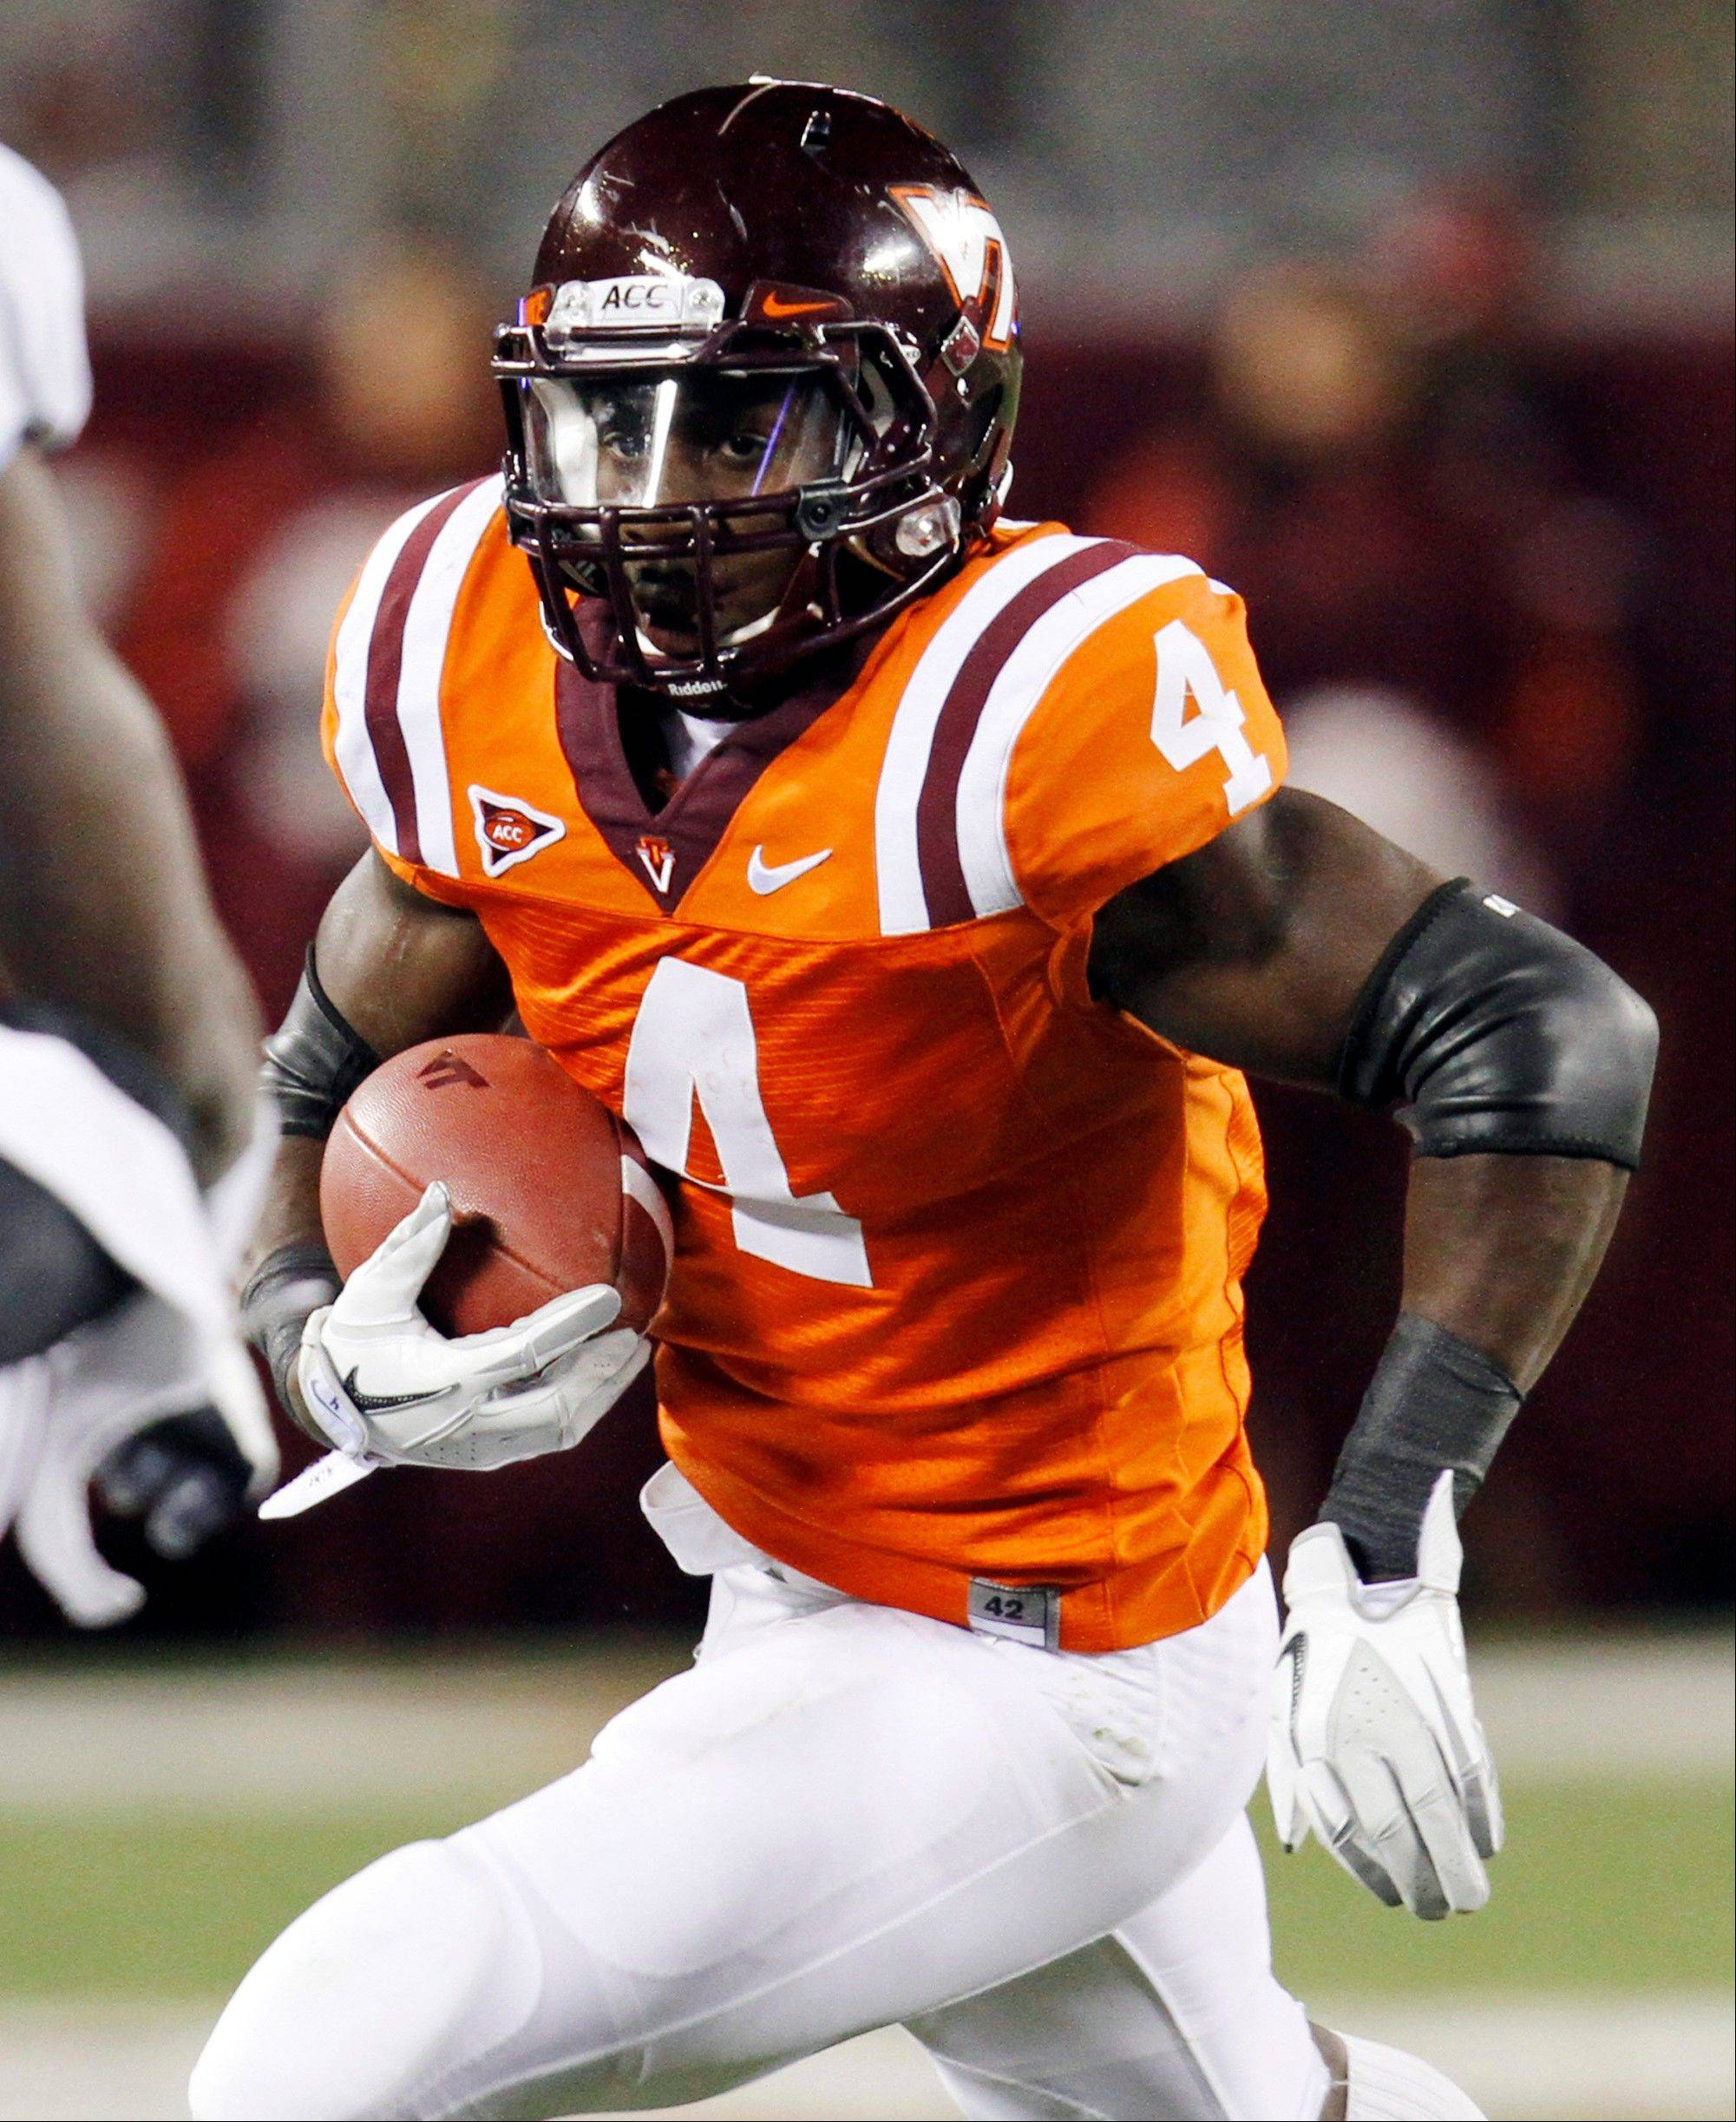 Virginia Tech running back David Wilson was selected as the 32nd pick overall by the New York Giants in the first round of the NFL Draft at Radio City Music Hall.